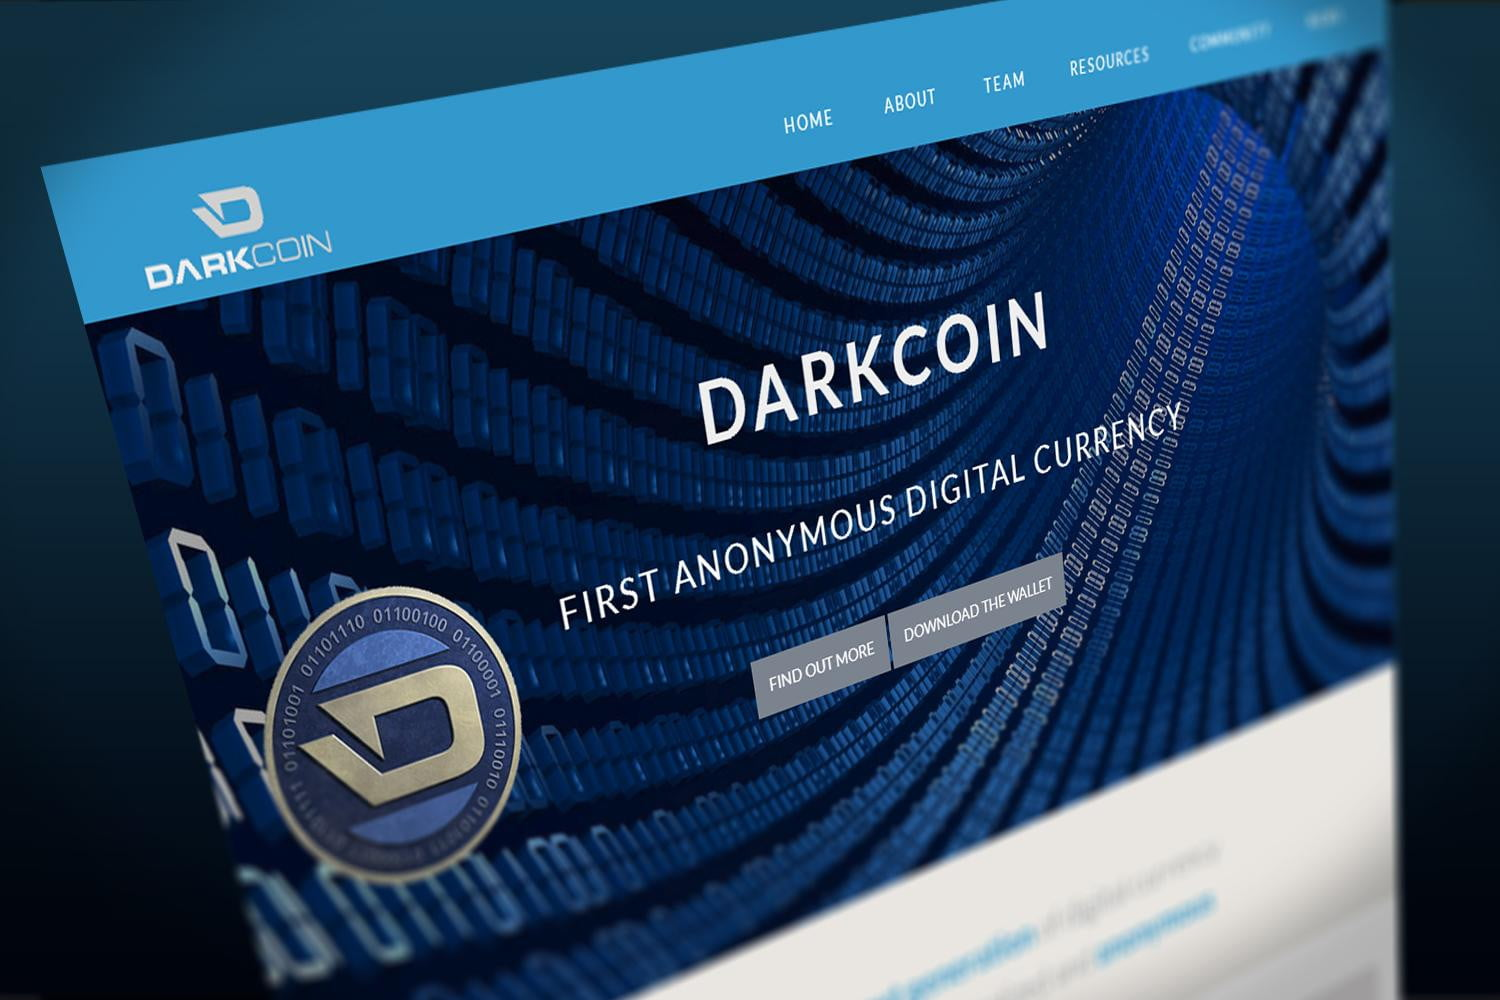 Darkcoin Explodes In Value: The Next Hot Bitcoinpetitor  Digital Trends